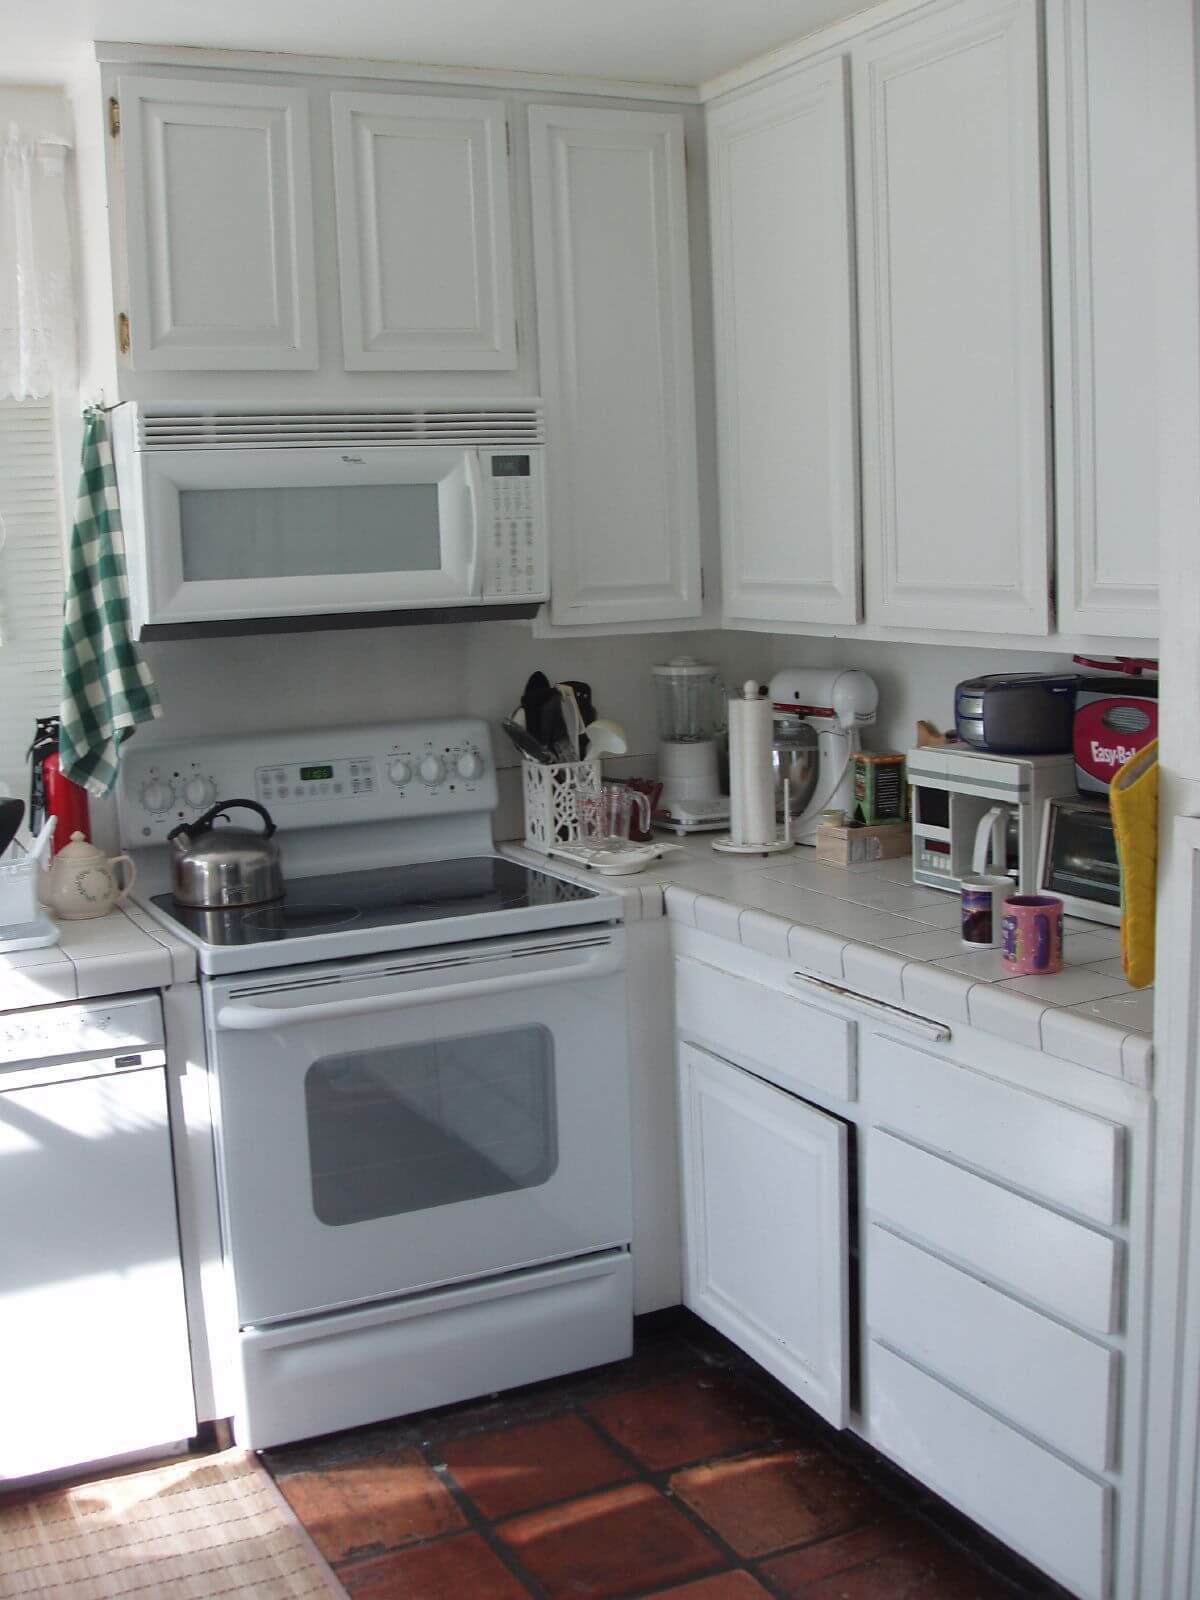 Washer And Dryer Calgary Appliance Repair Services In Calgary Fridge Washer Dryer